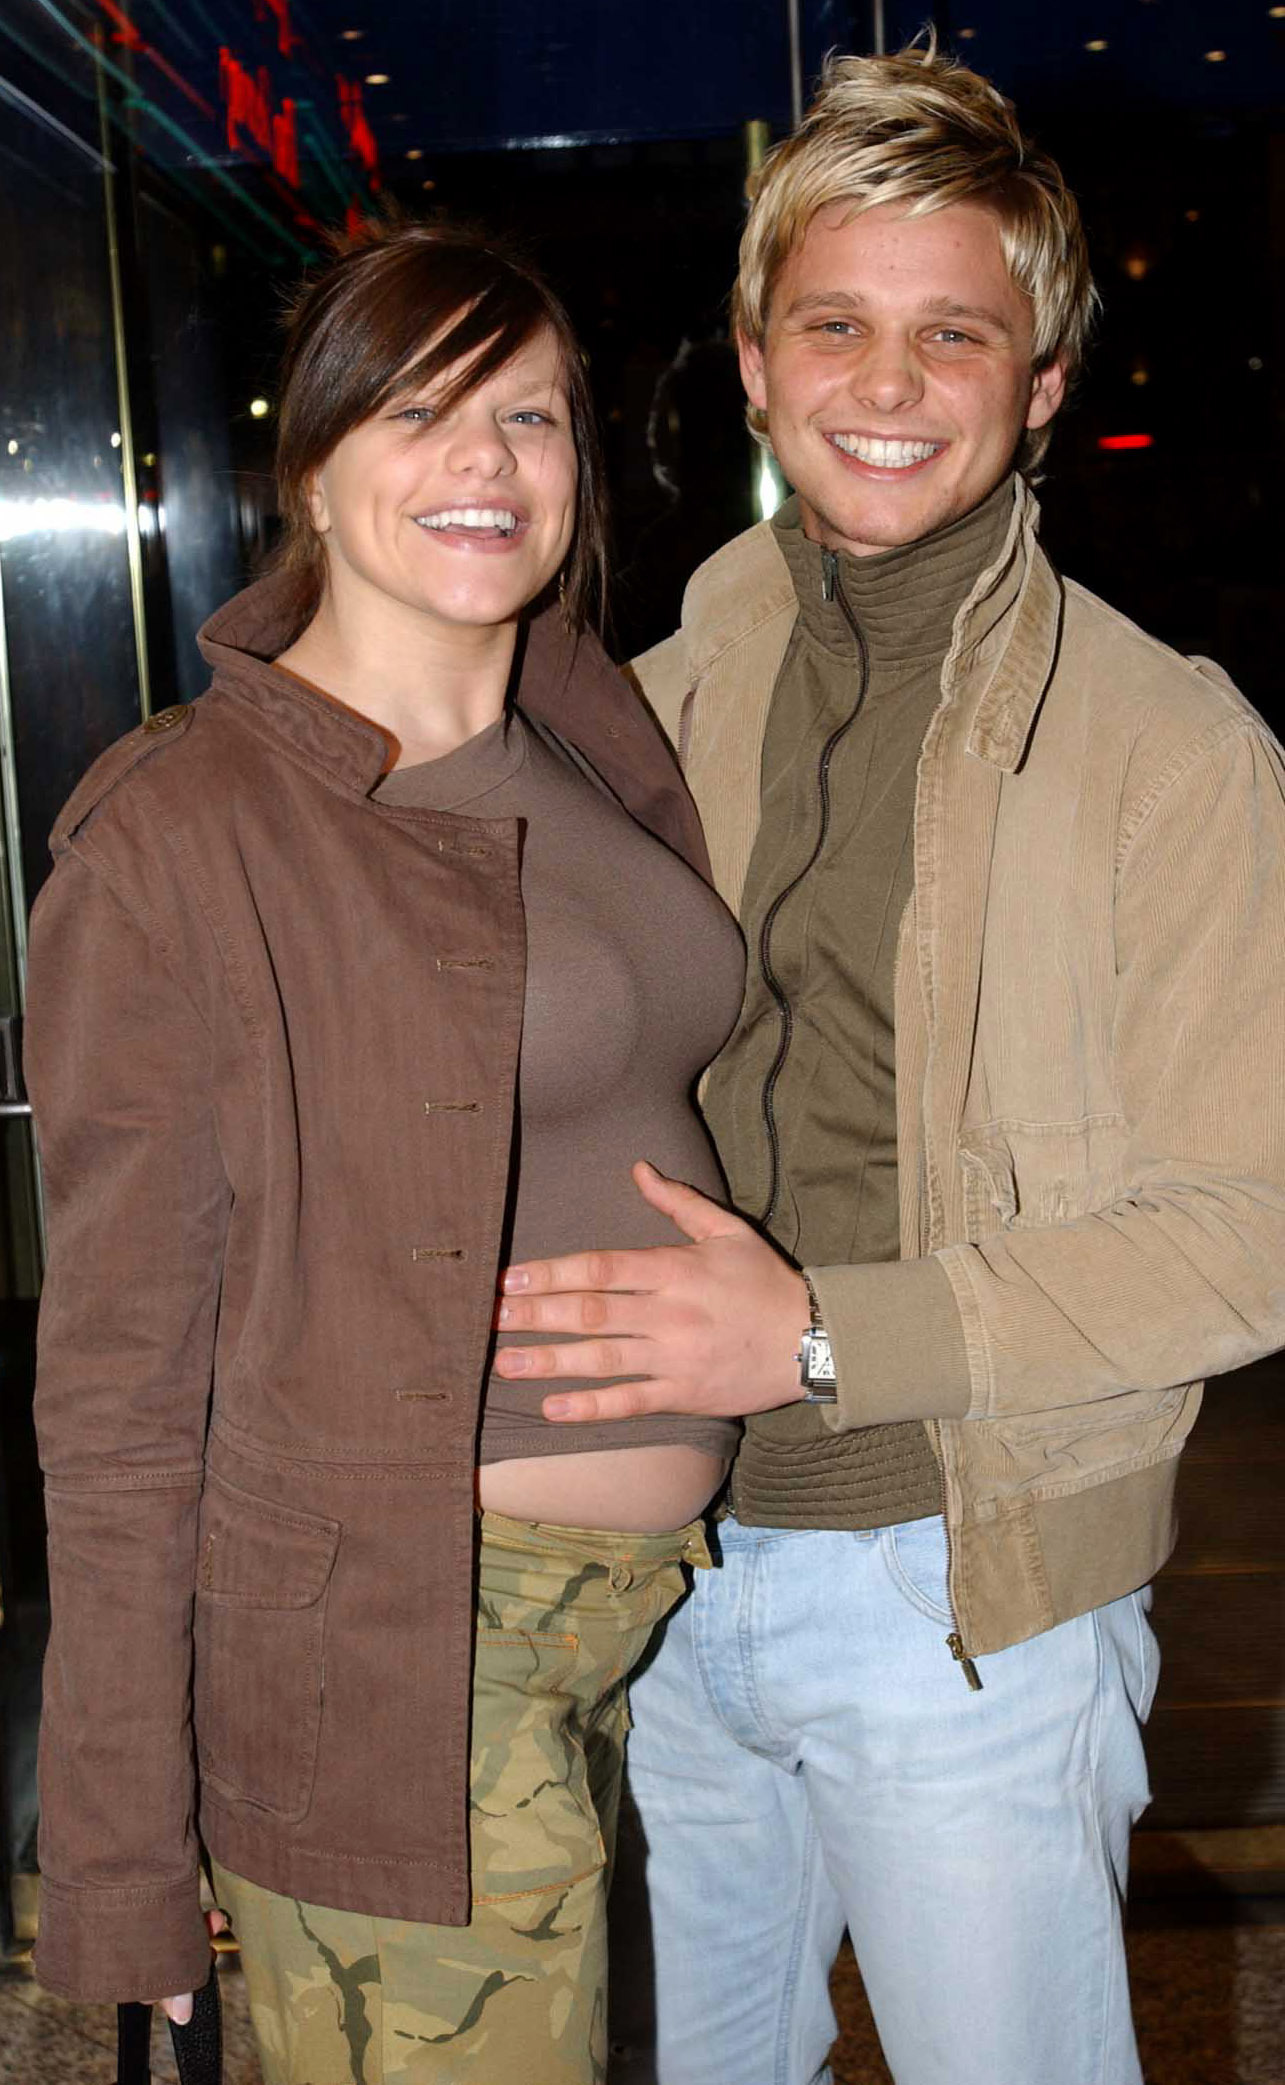 Jade Goody Jeff Brazier at premiere in 2003.